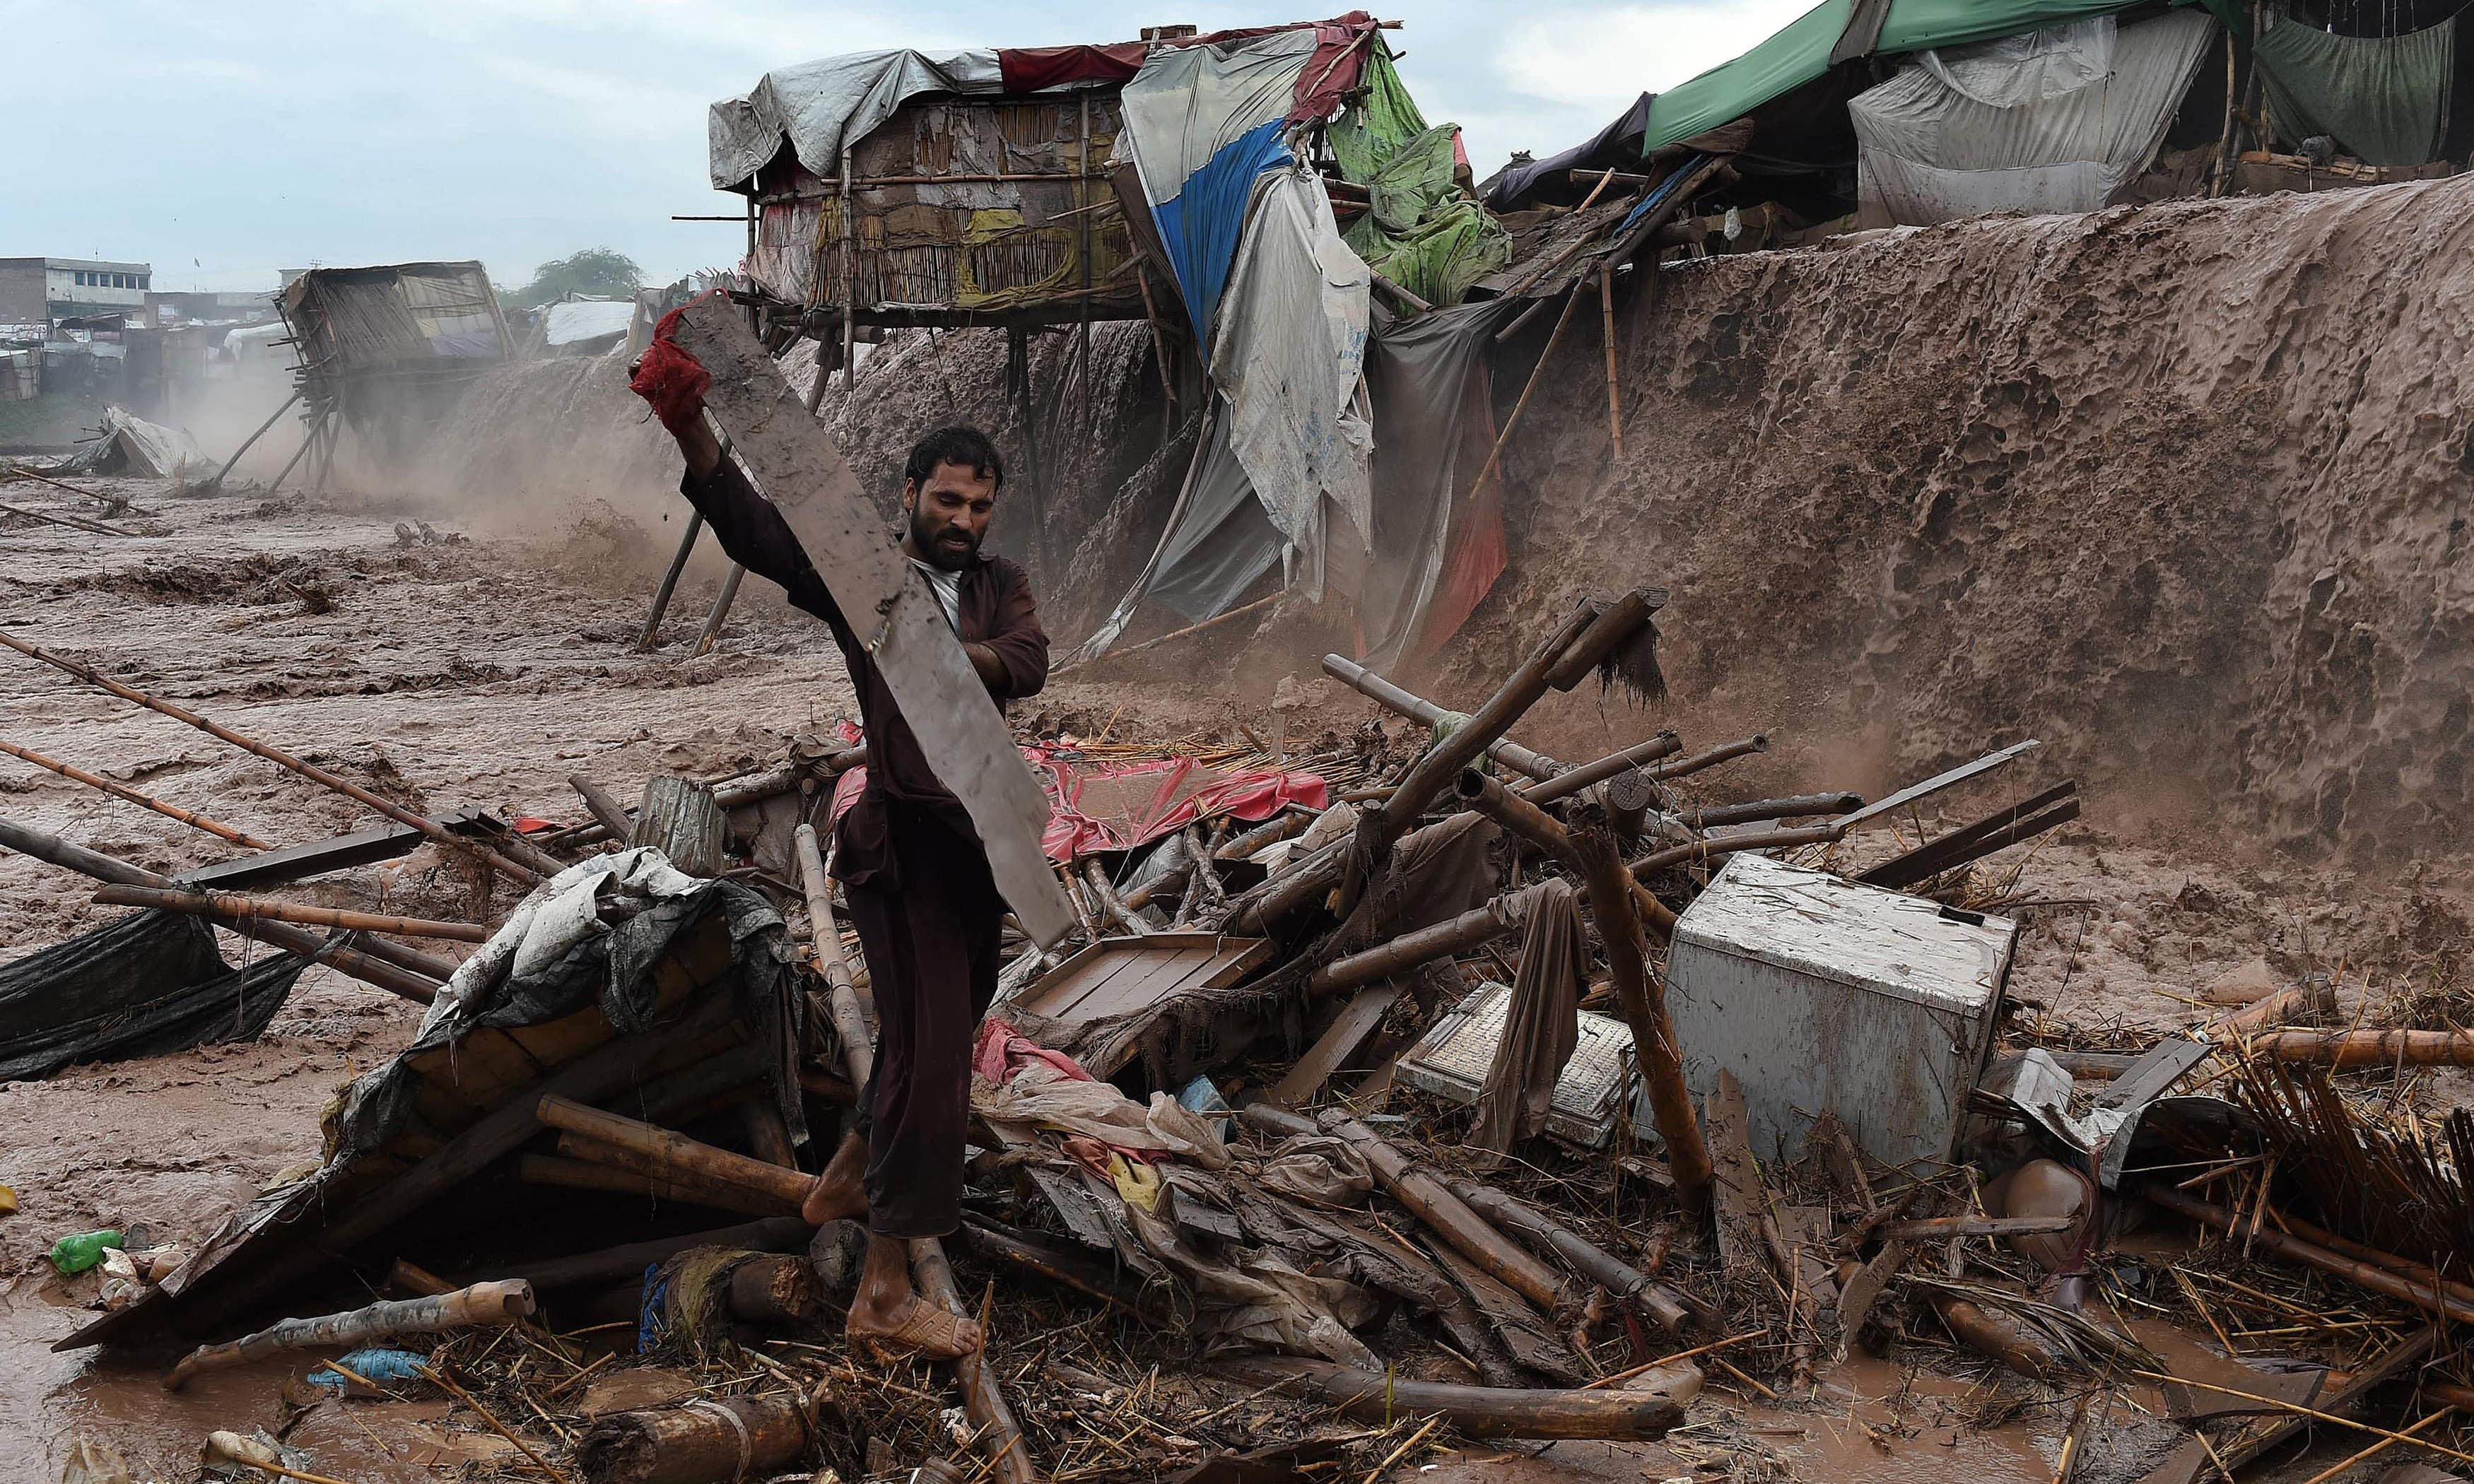 Flood waters rush through a market area as a man tries to salvage materials on the outskirts of Peshawar. AFP